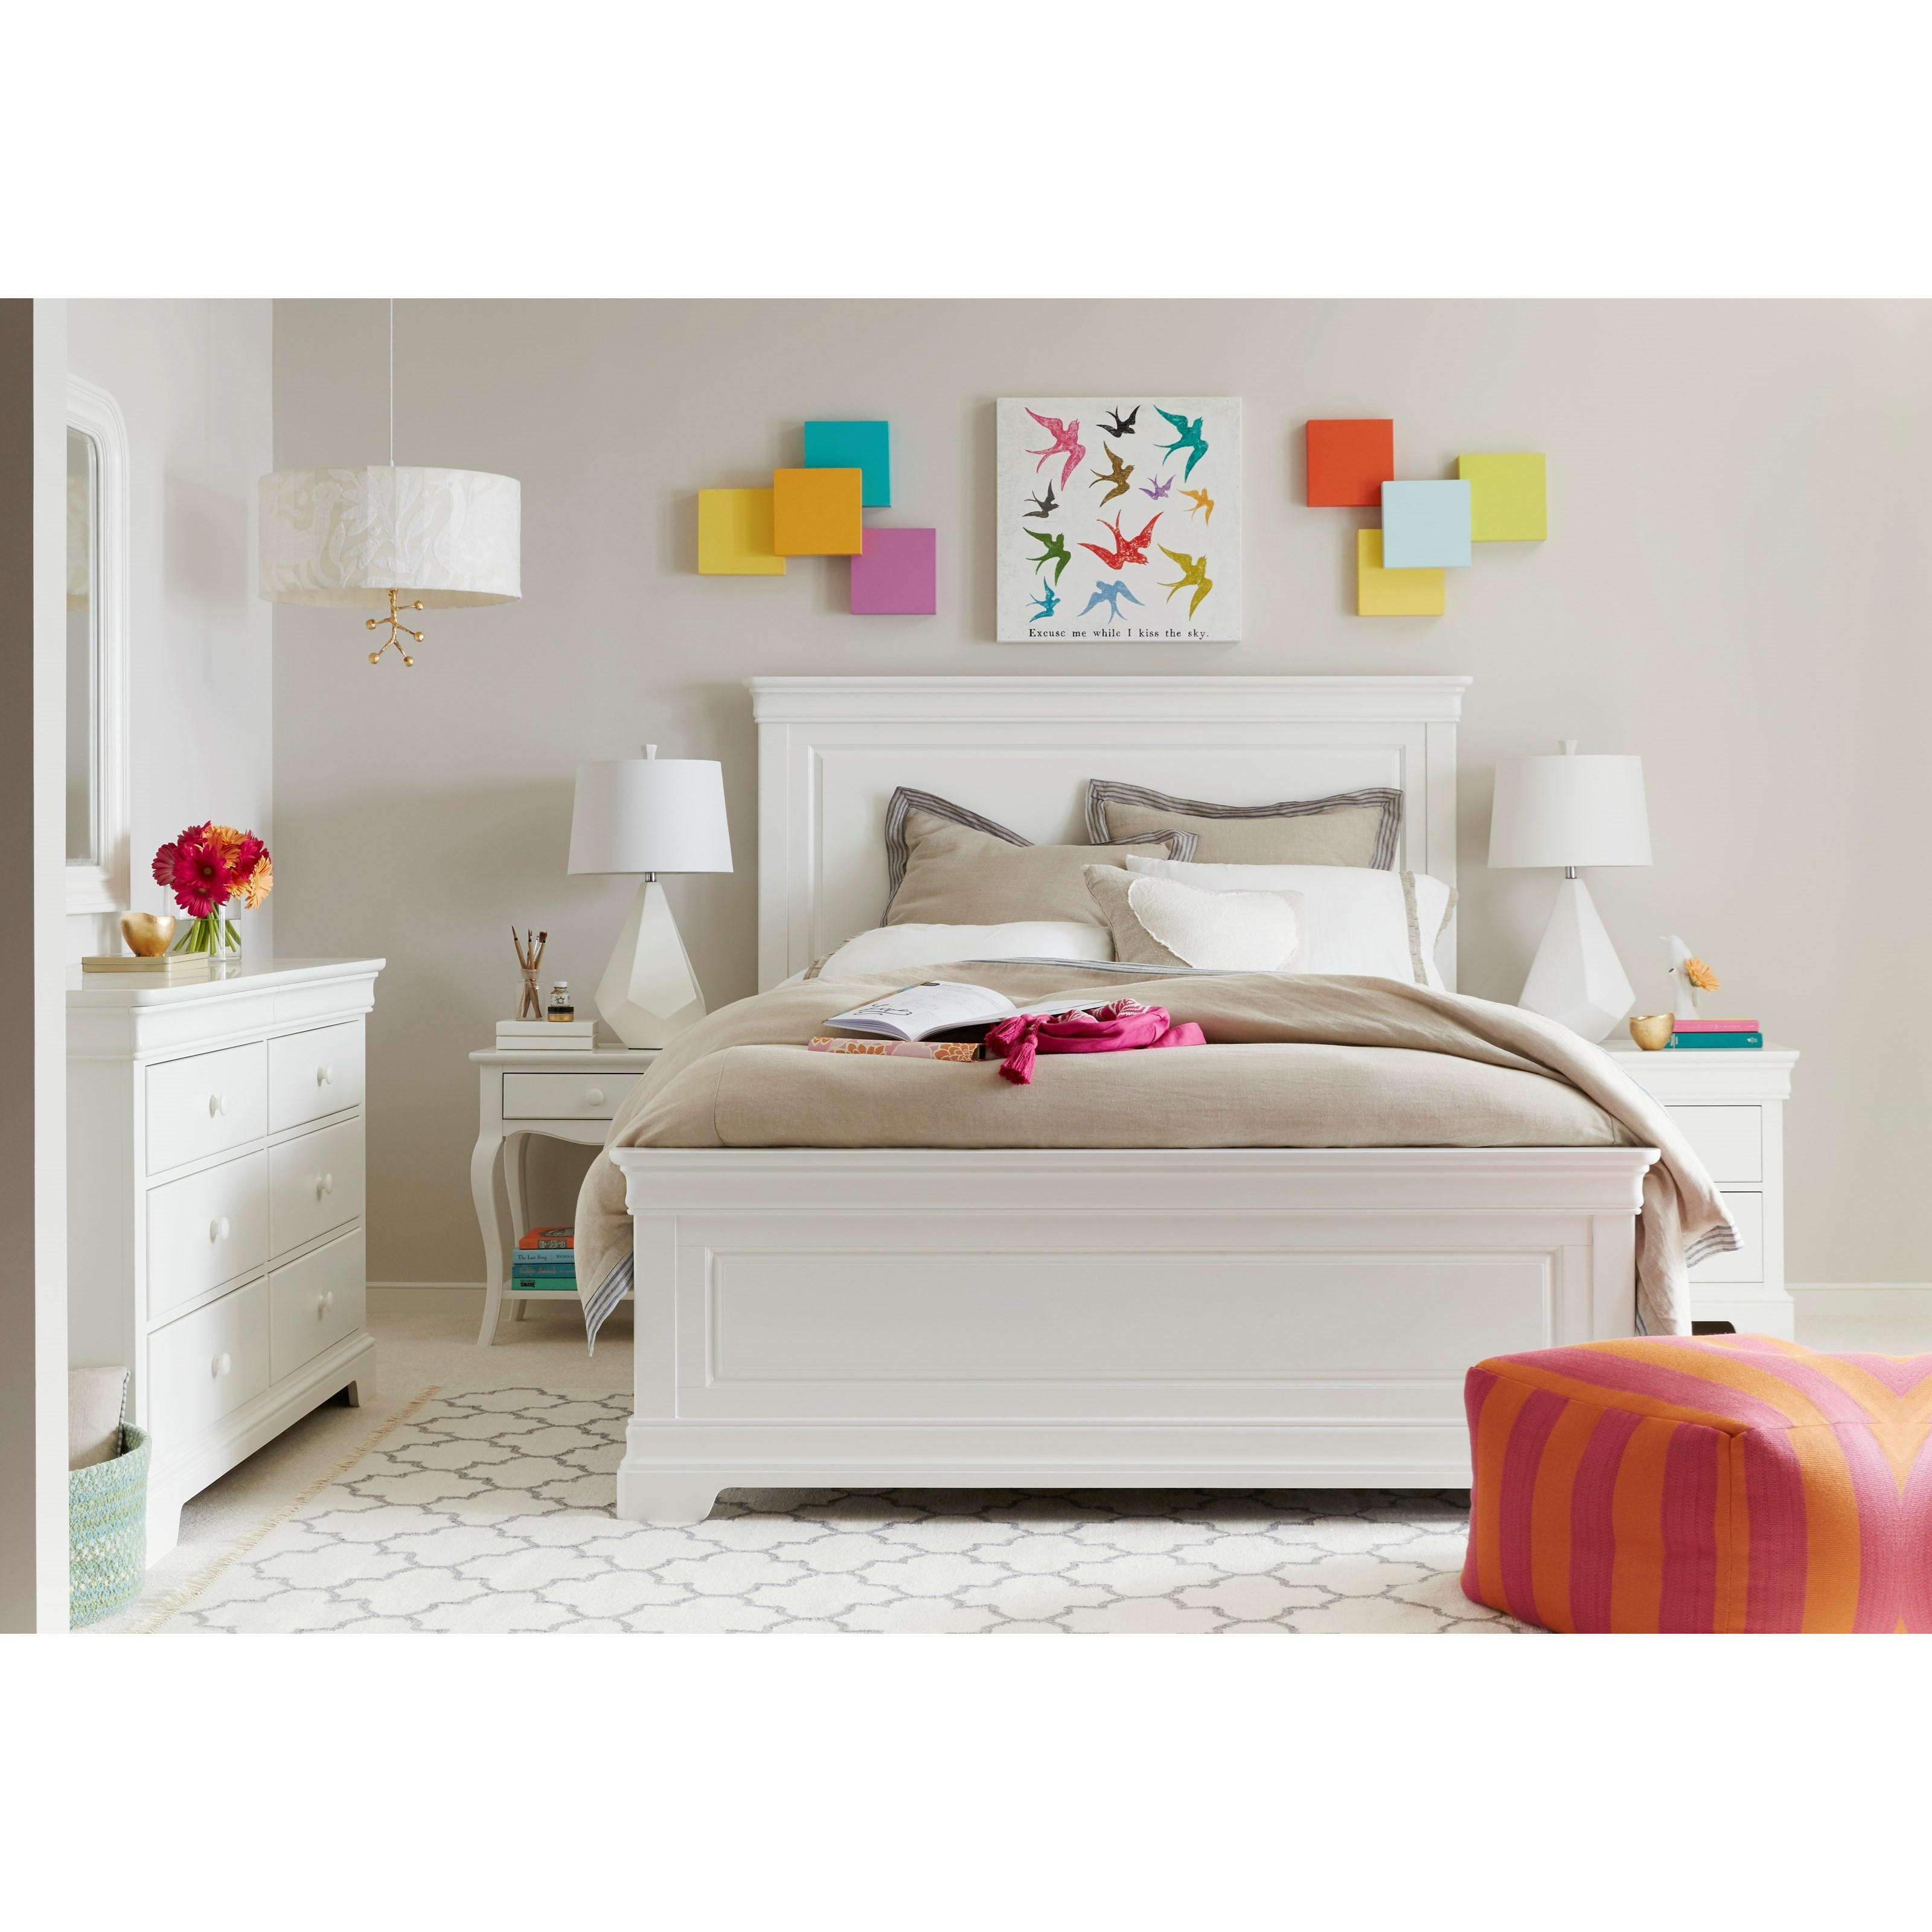 Stone & Leigh Furniture Teaberry Lane Twin Bedroom Group - Item Number: 575-23 T Bedroom Group 1